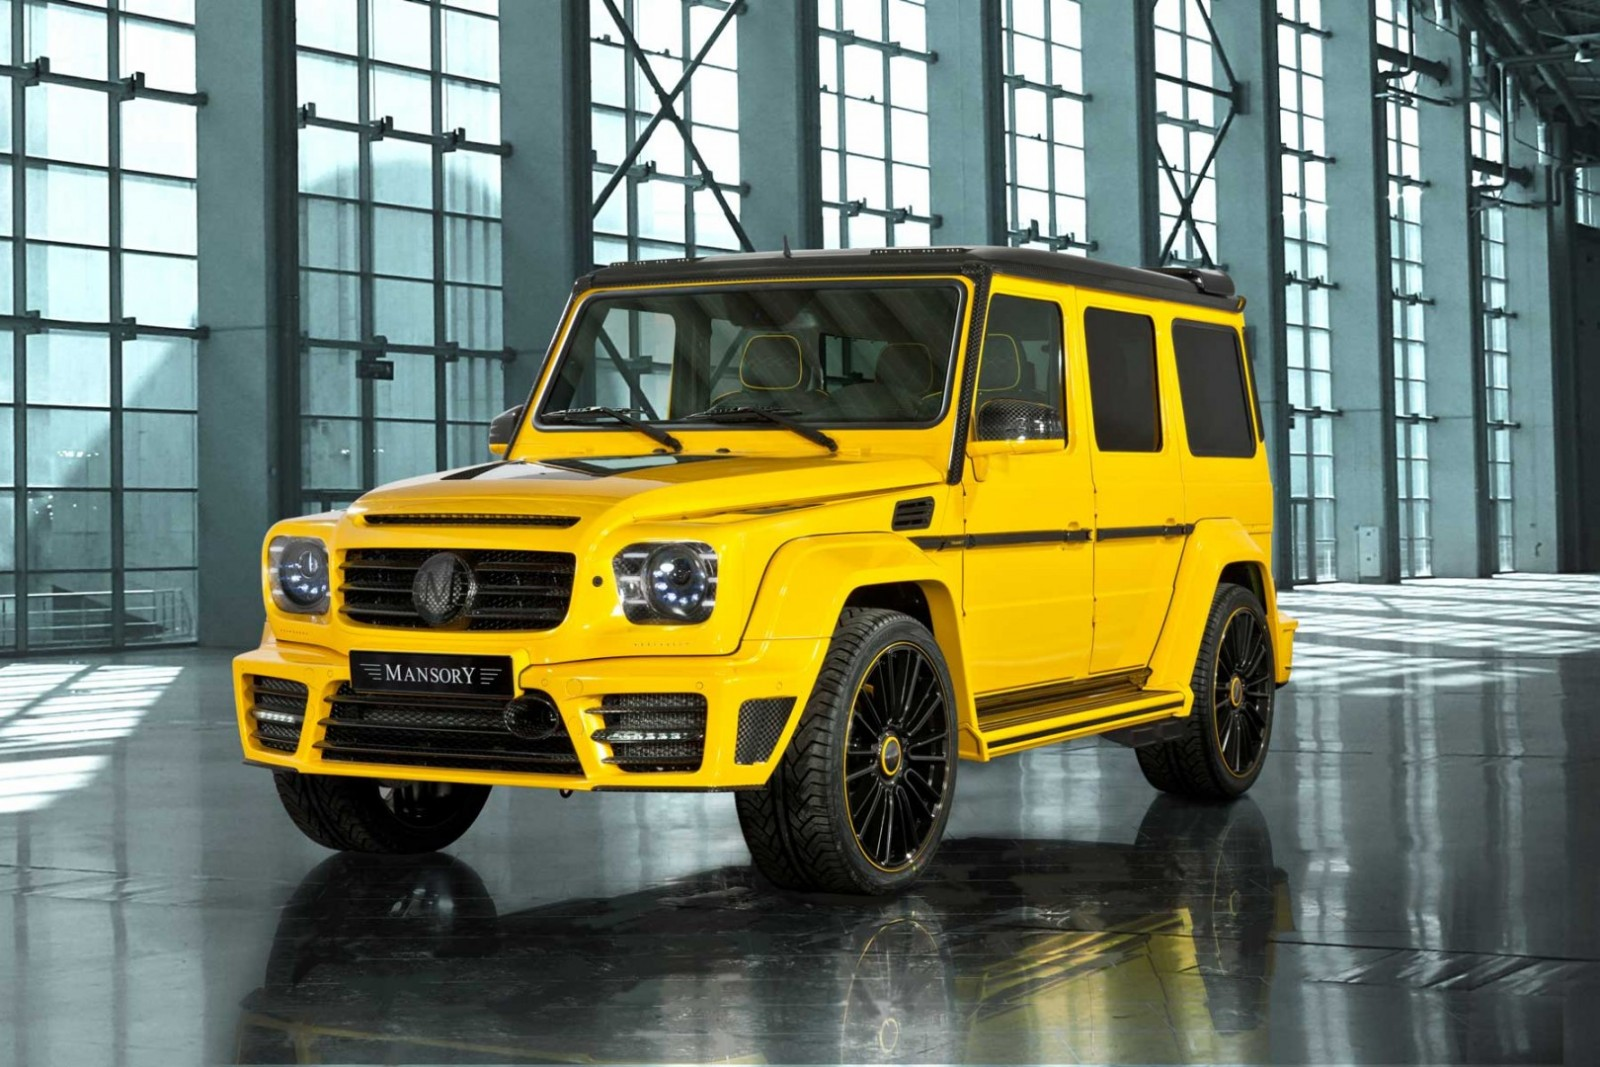 Mansory tuned Mercedes-Benz G63 AMG Gronos